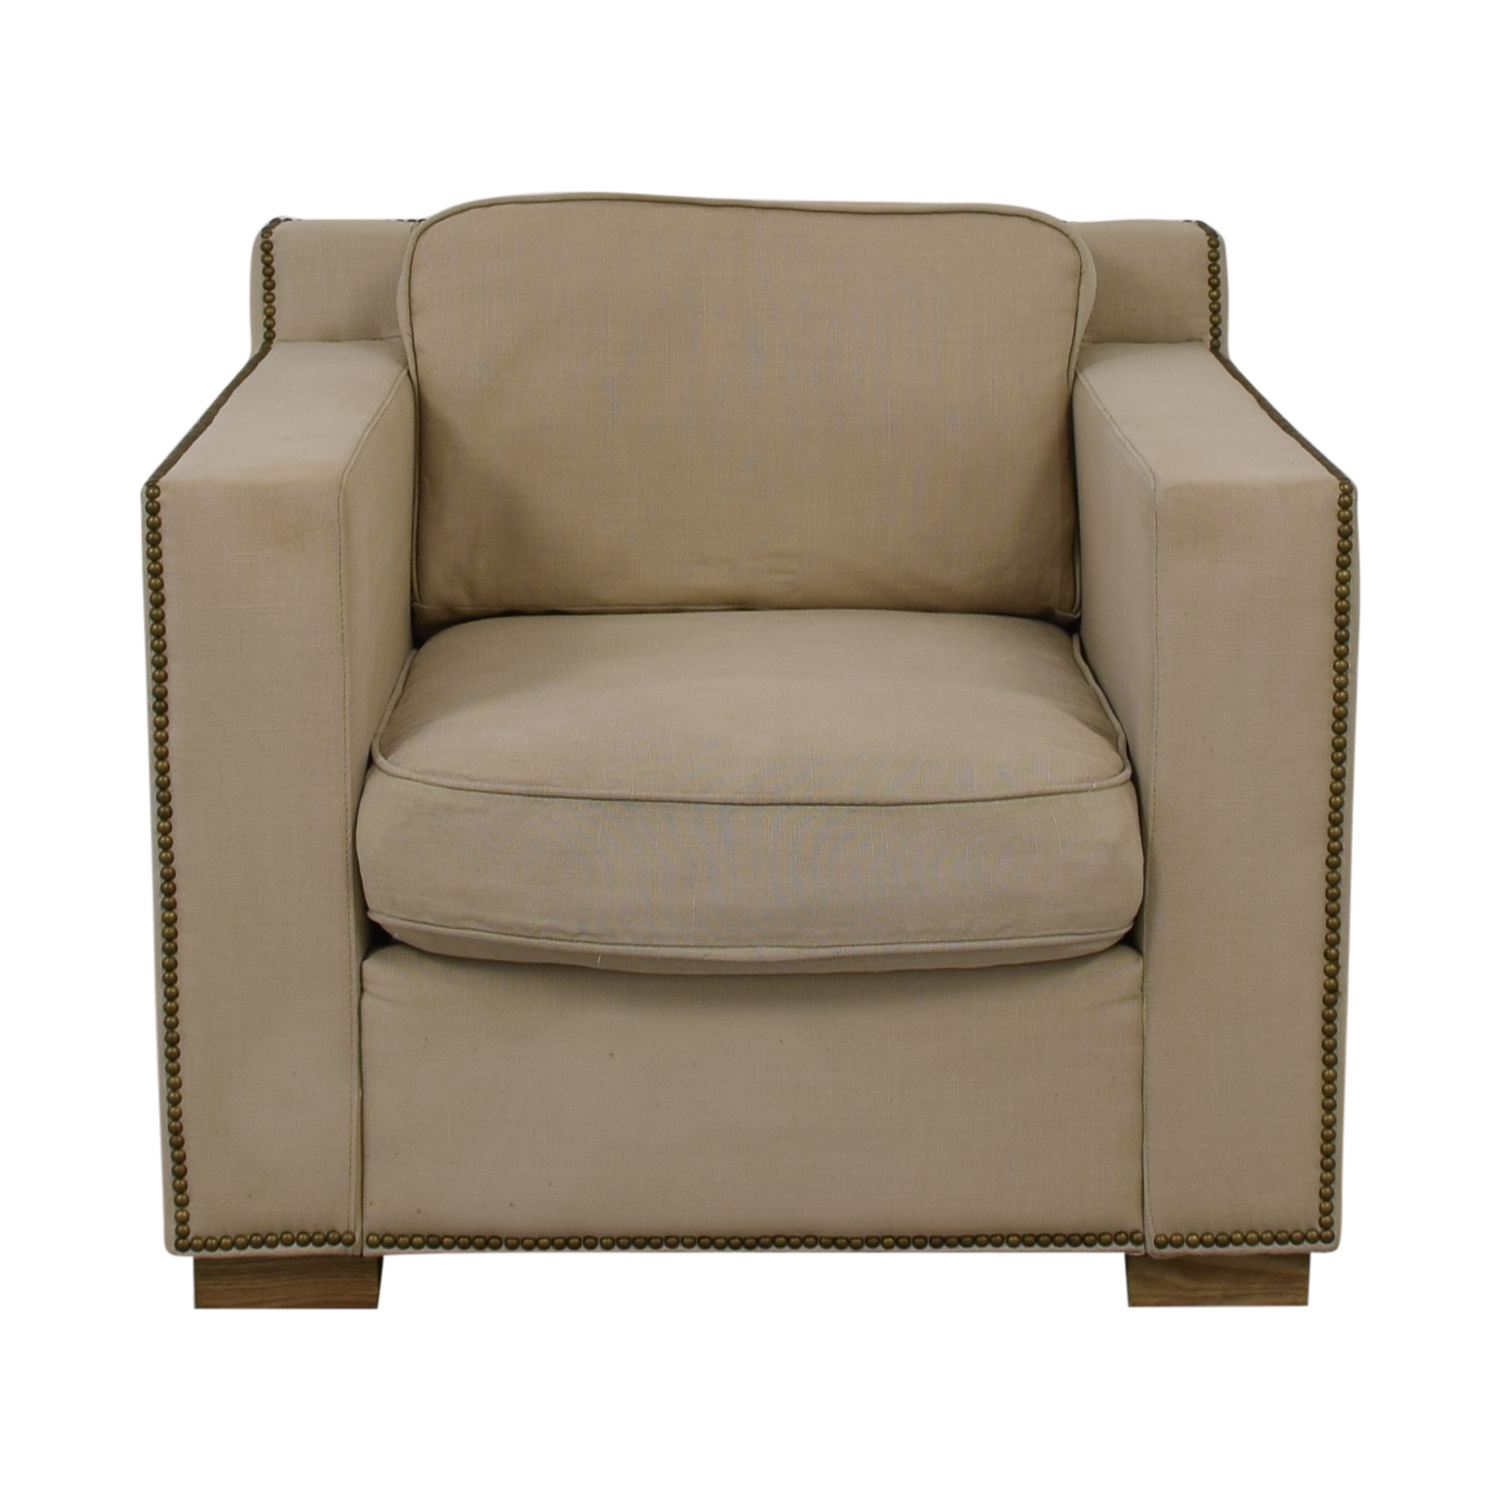 buy Restoration Hardware Collins Beige Nailhead Accent Chair Restoration Hardware Accent Chairs